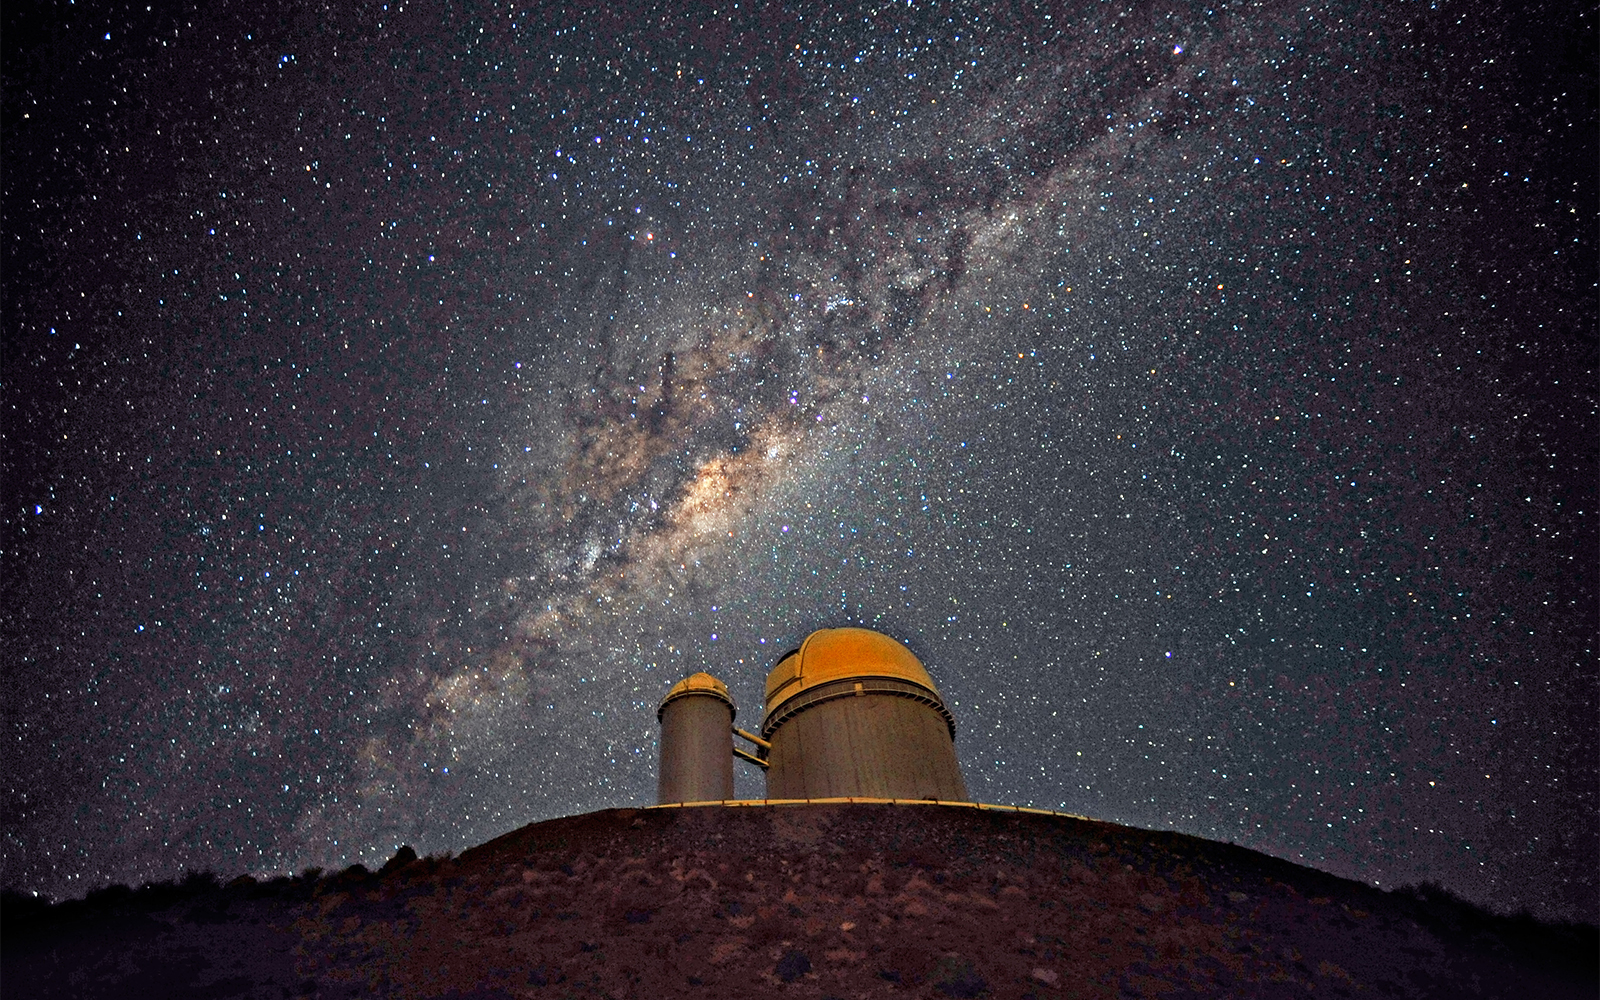 slide 2 - Photo of the Milky Way galaxy above La Silla observatory